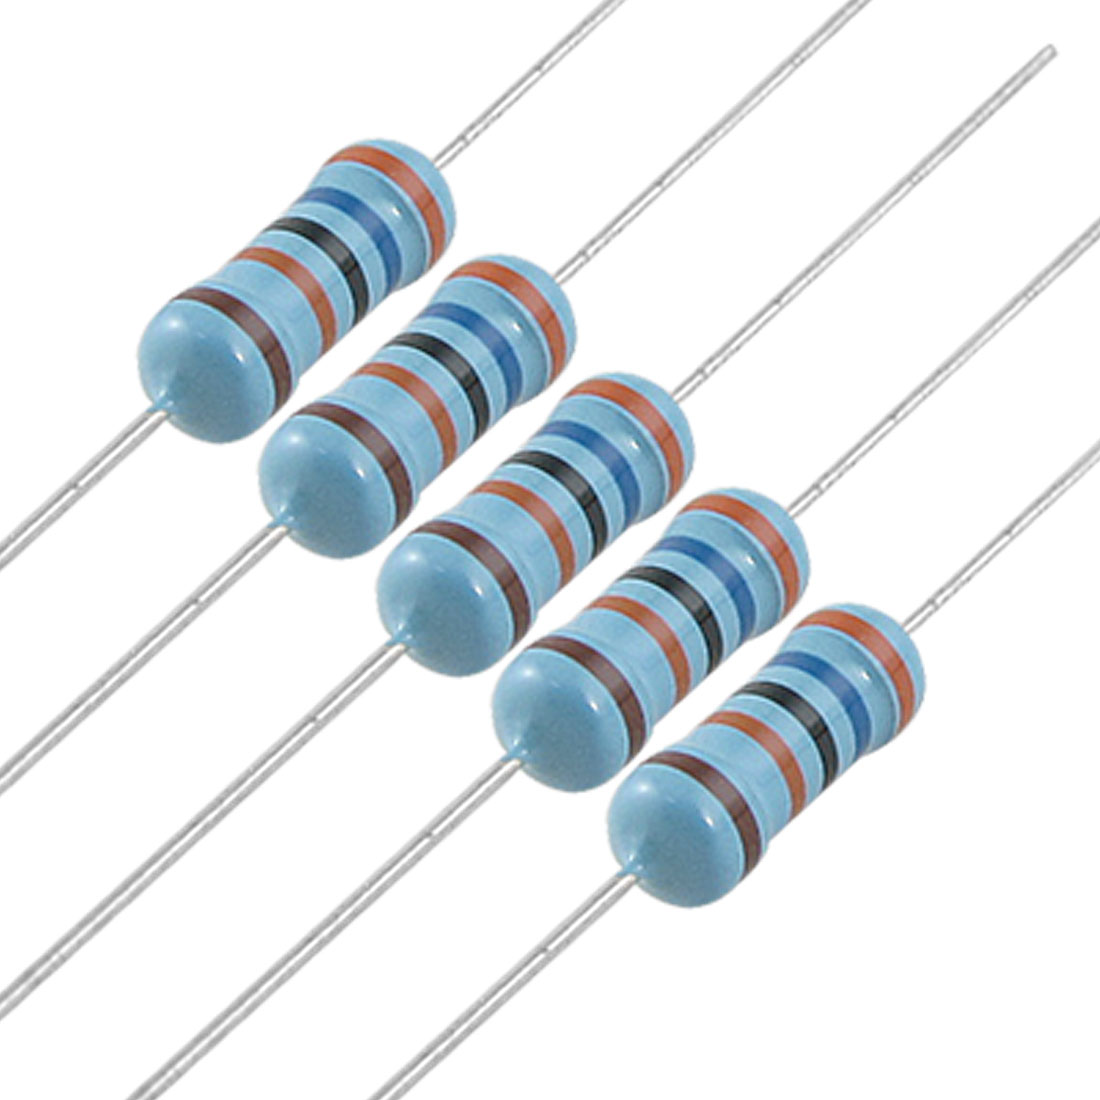 200x 1W 360K Ohm 1% Axial Lead Metal Film Resistors